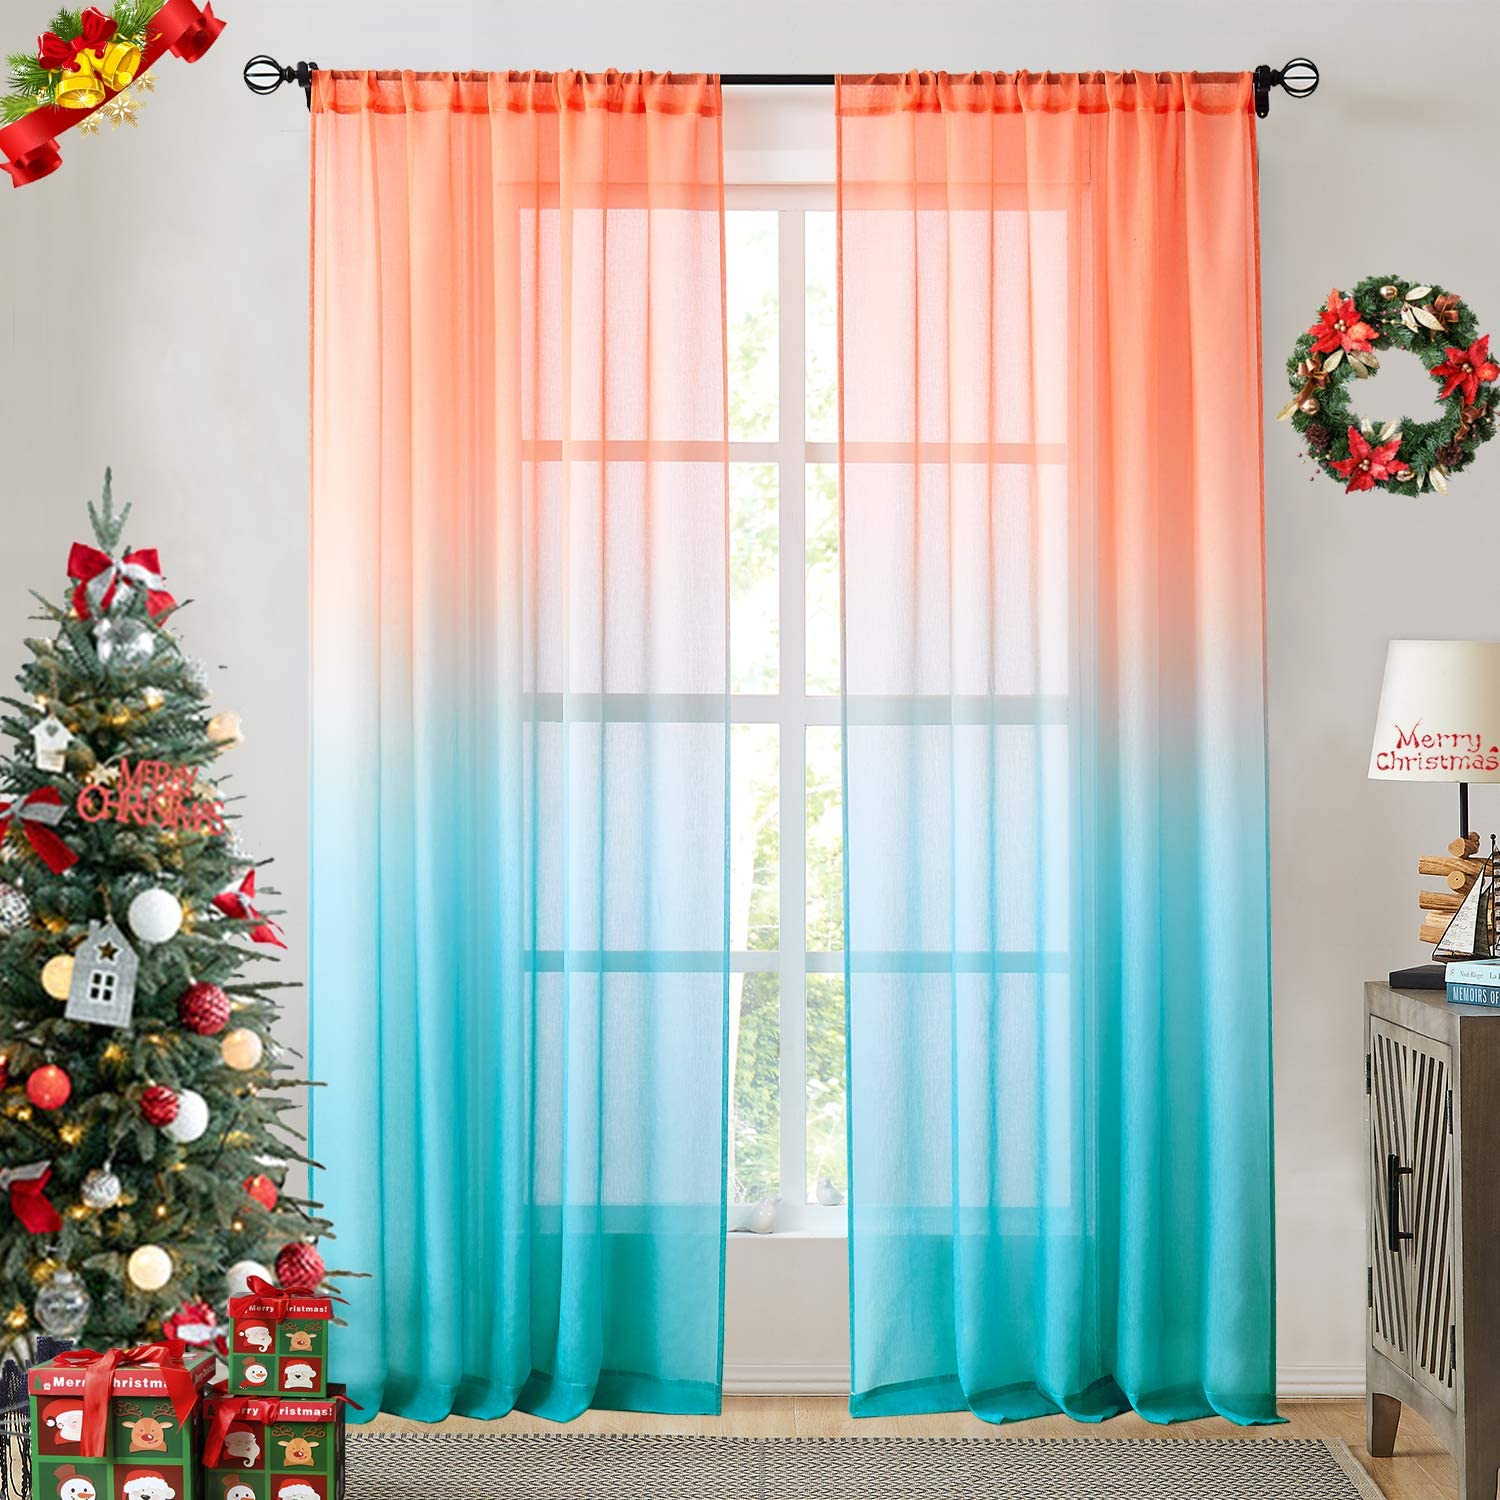 Faux Linen Ombre Sheer Curtains Orange and Blue 2 Tone Reversible Rod Pocket for Bedroom Living Room,Privacy and Light Filtering Semi Sheer Gradient Window Curtain Pair , Set of 2 Panels, 54 x 84 inch